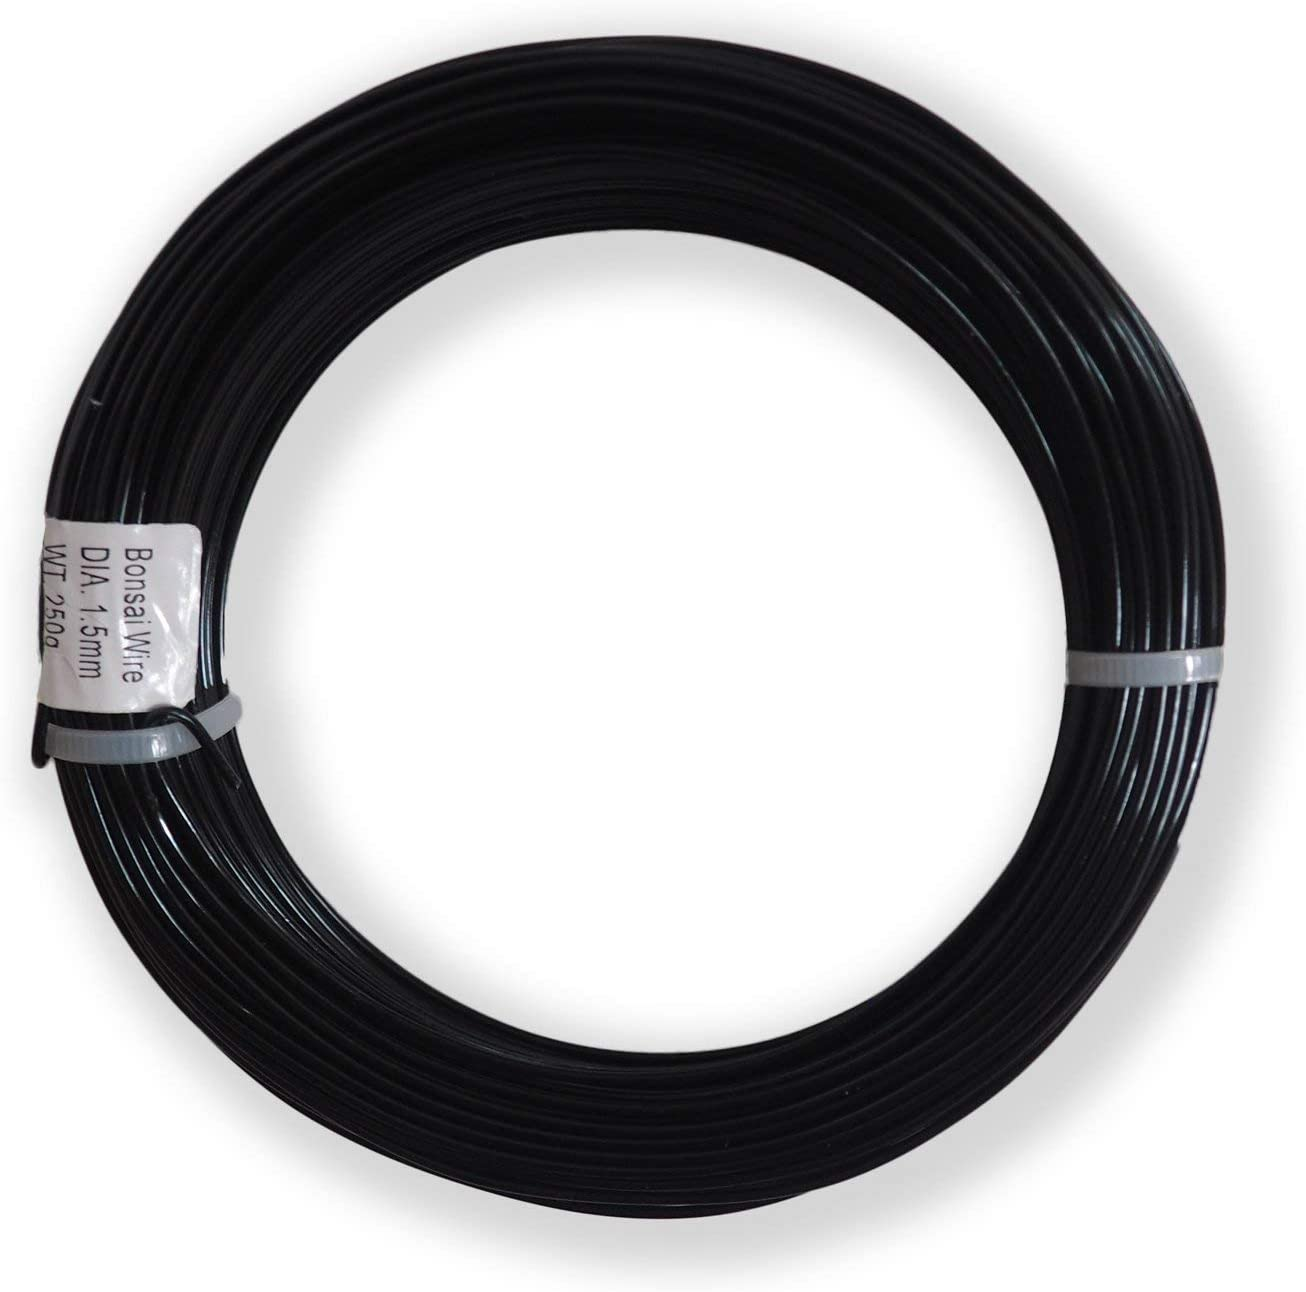 Amazon Com Anodized Aluminum 1 5mm Bonsai Training Wire 250g Large Roll 170 Feet Choose Your Size And Color 1 5mm Black Garden Outdoor